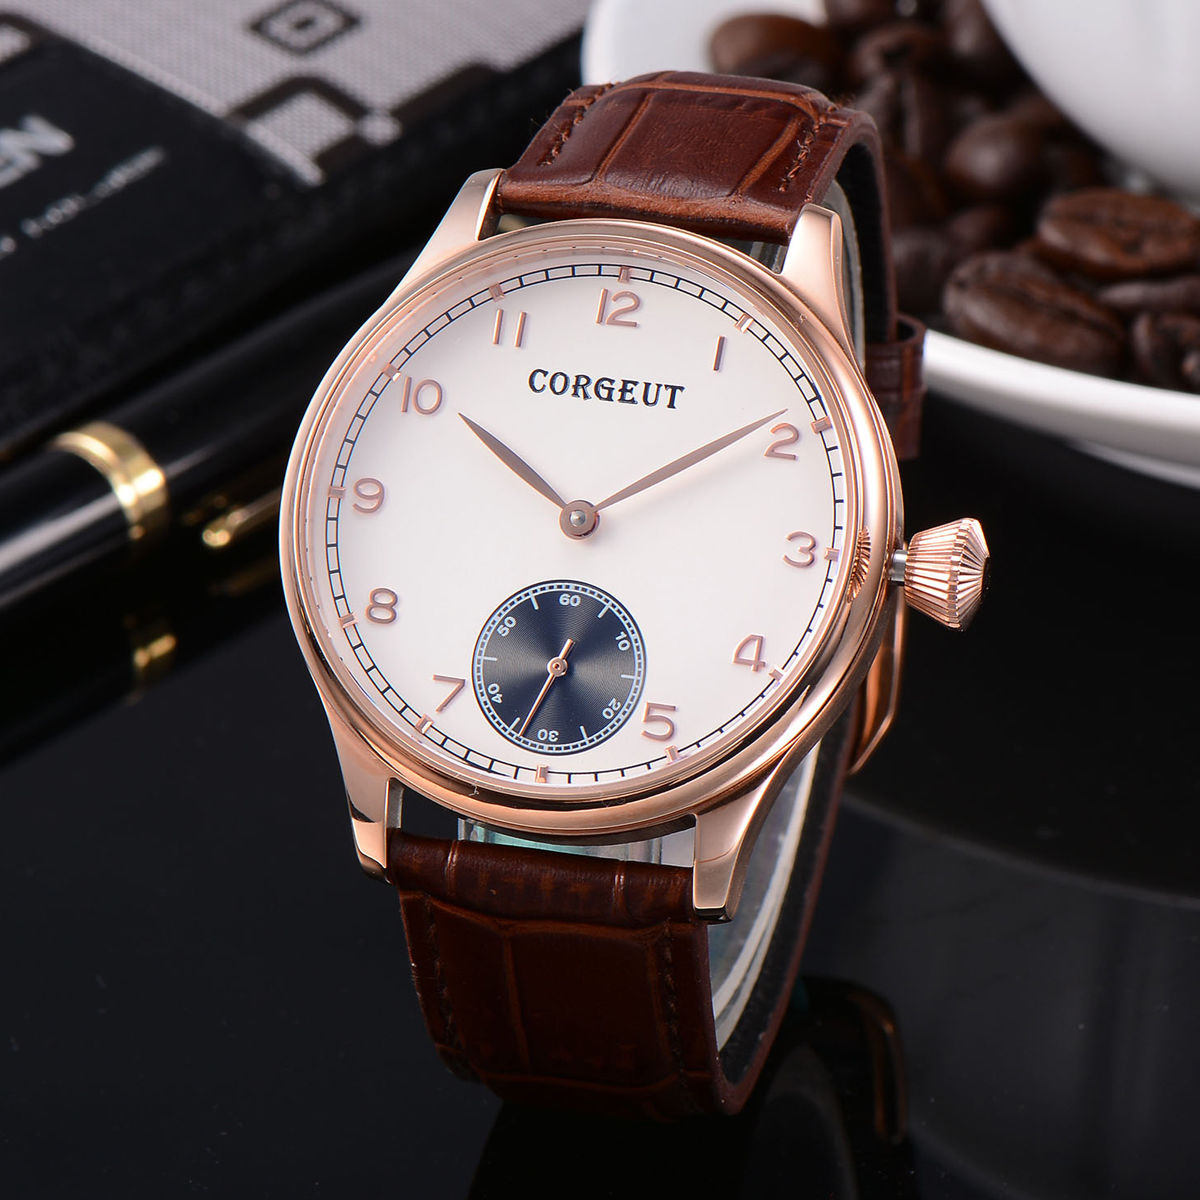 Corgeut 44mm Fashion Rose Gold Coated Case Relojes, Brown Leather Strap Wrist Watches White Dial 6498 Hand Winding Men's Watch